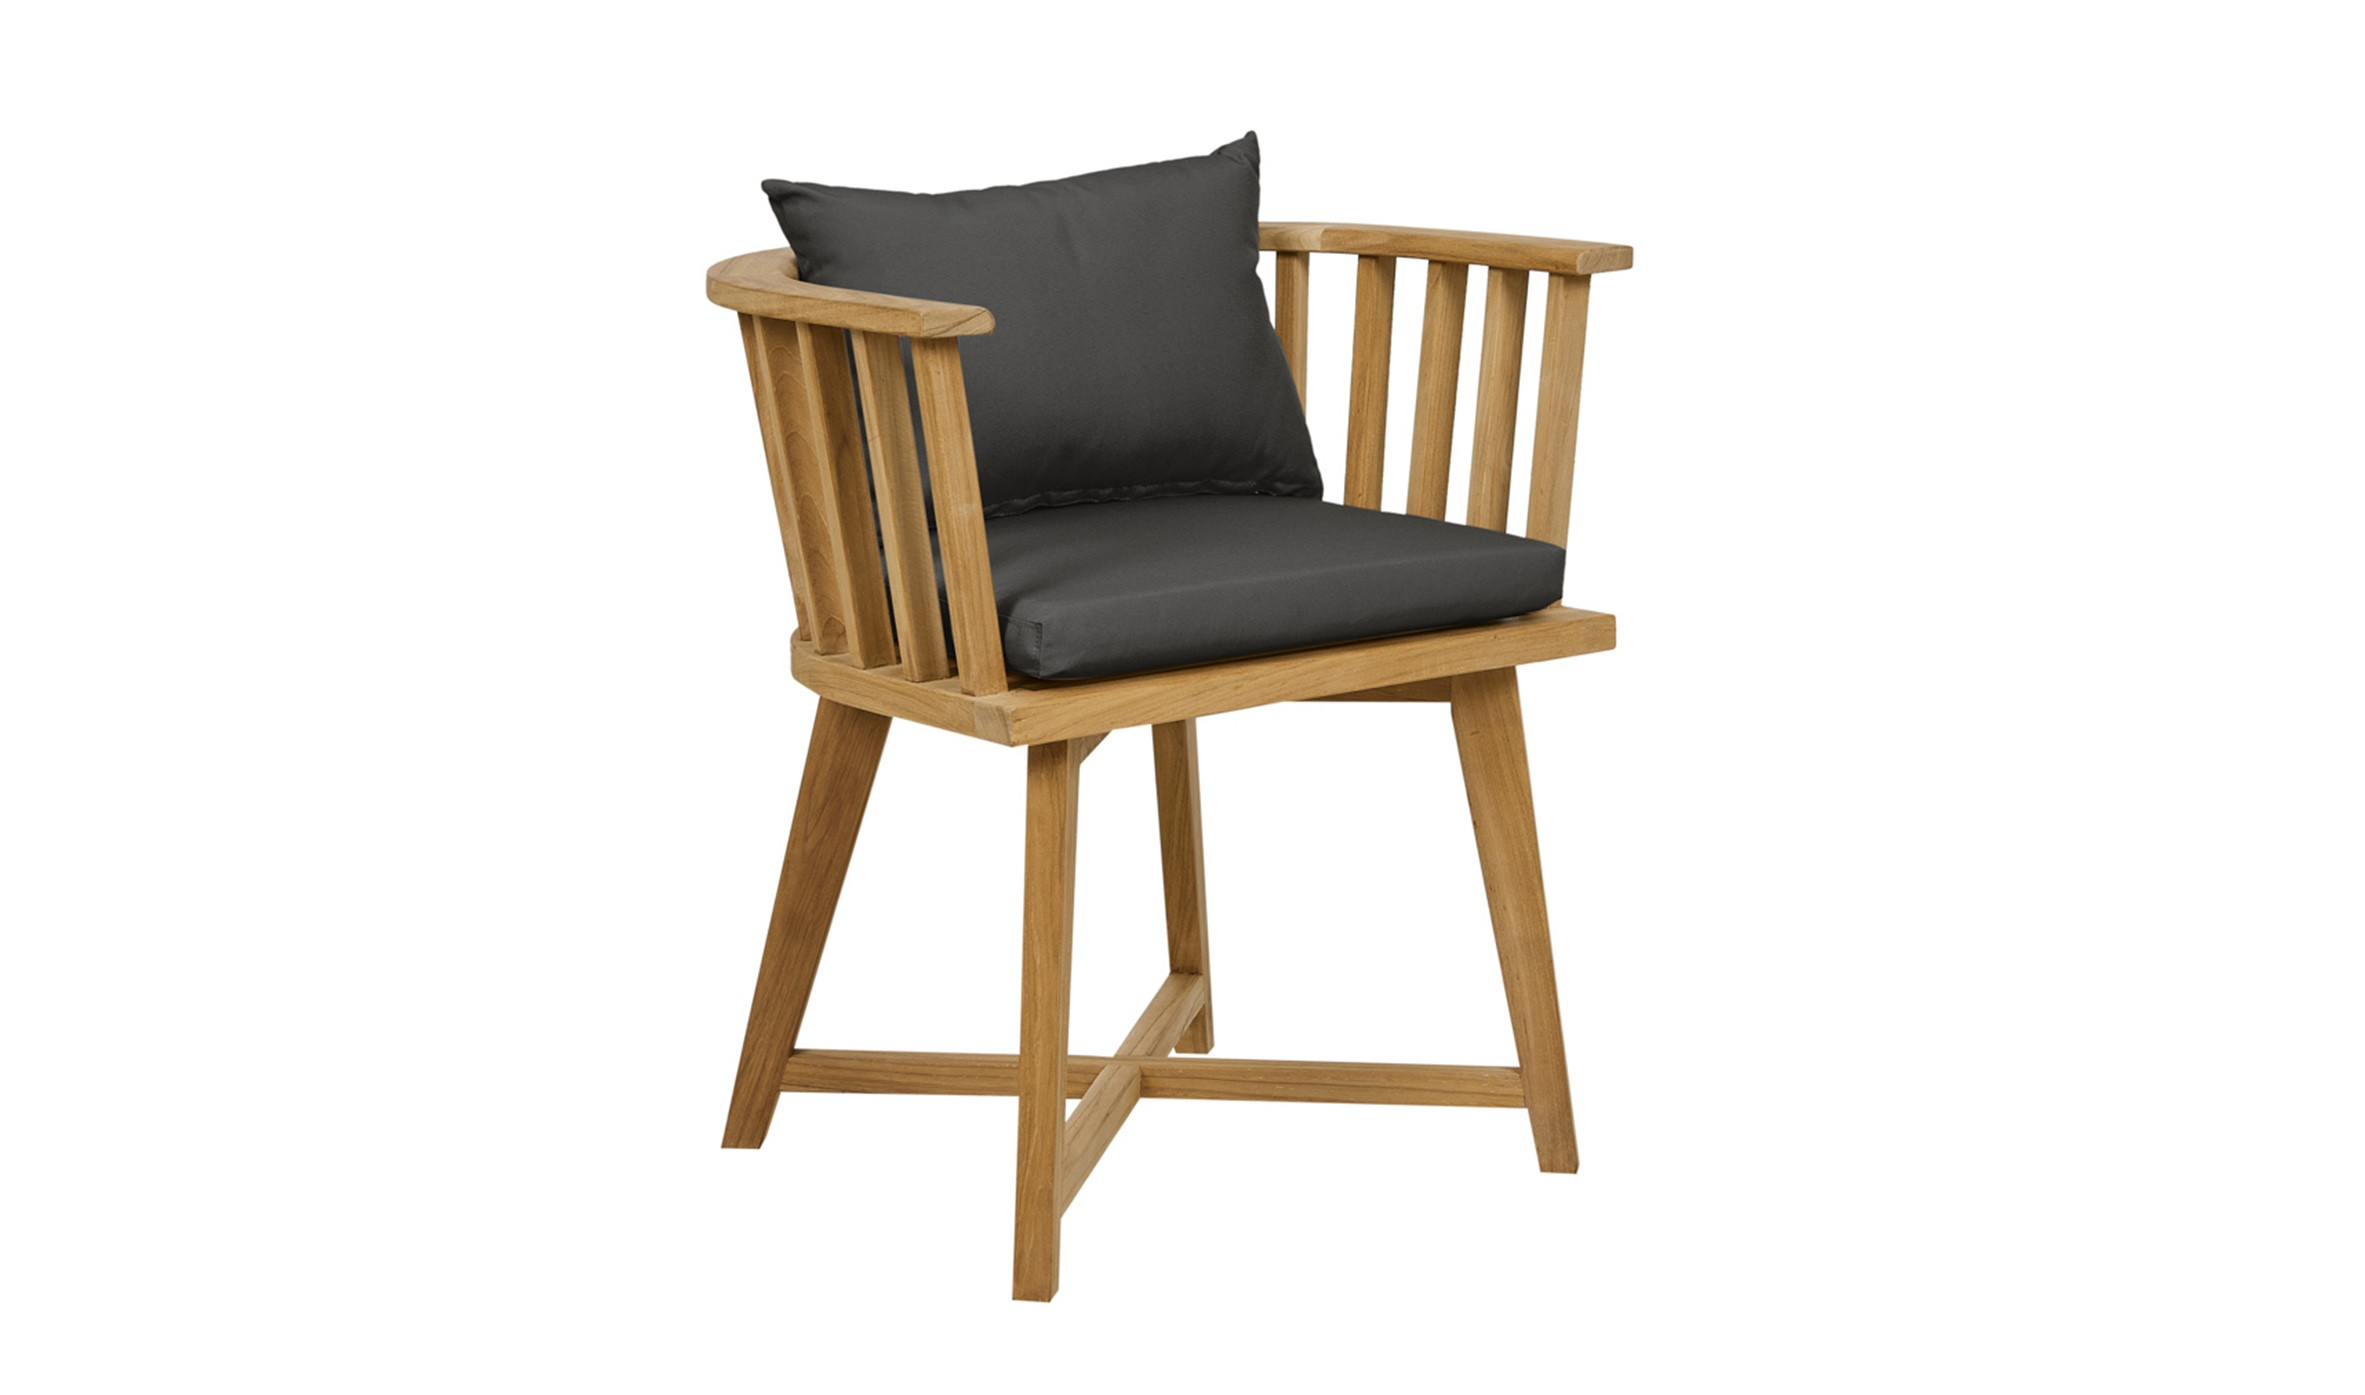 Furniture Thumbnails outdoor-dining-chairs-benches-and-stools-sonoma-slat-100